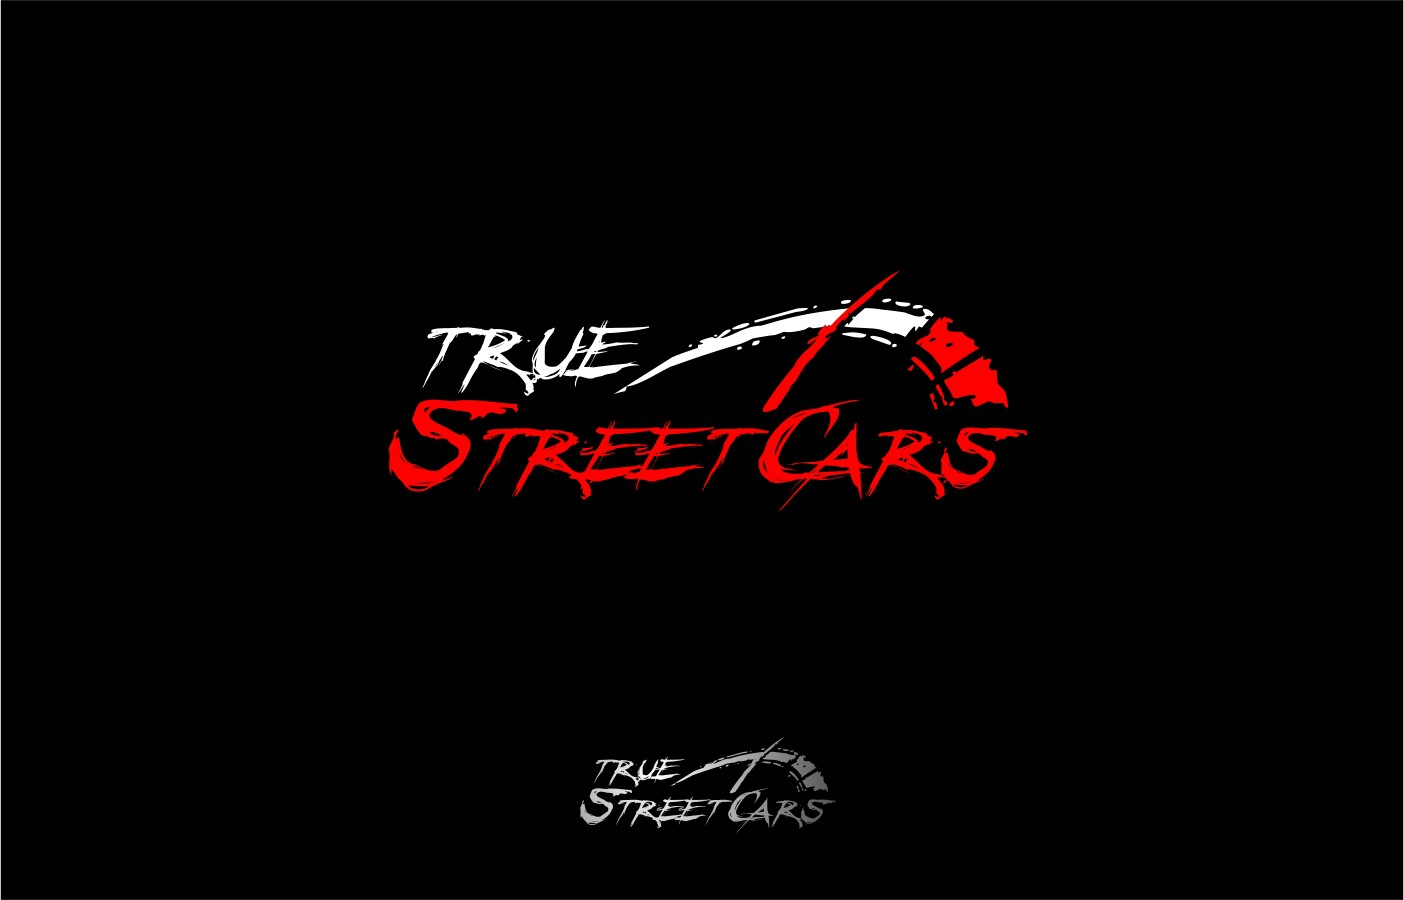 TrueStreetCars.com logo design contest, guaranteed!